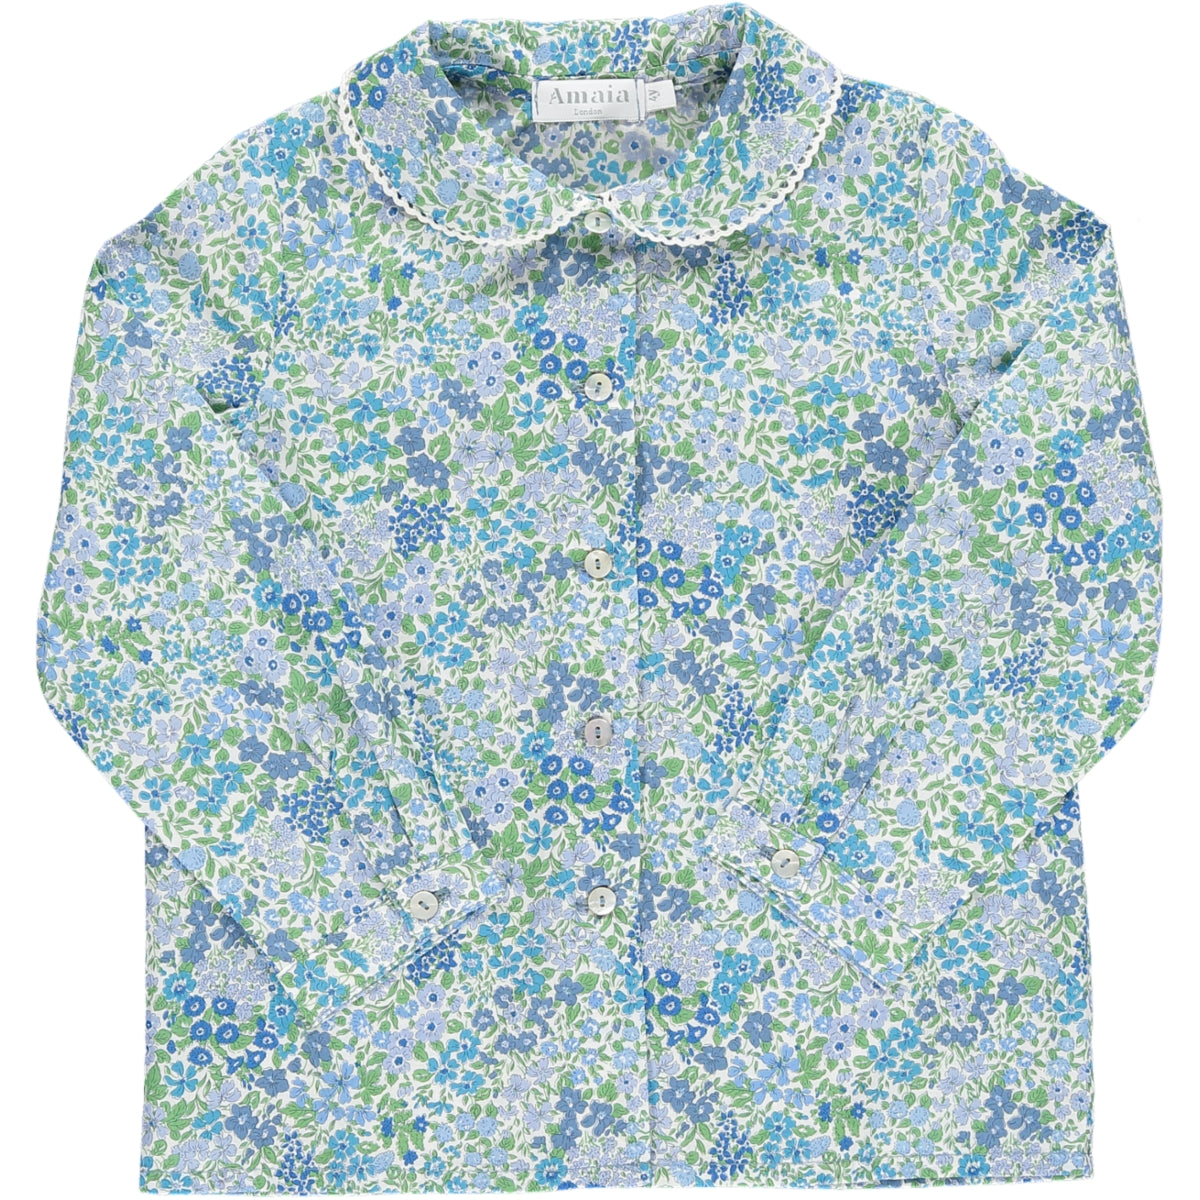 Coline Blouse Blue/Green Floral Liberty